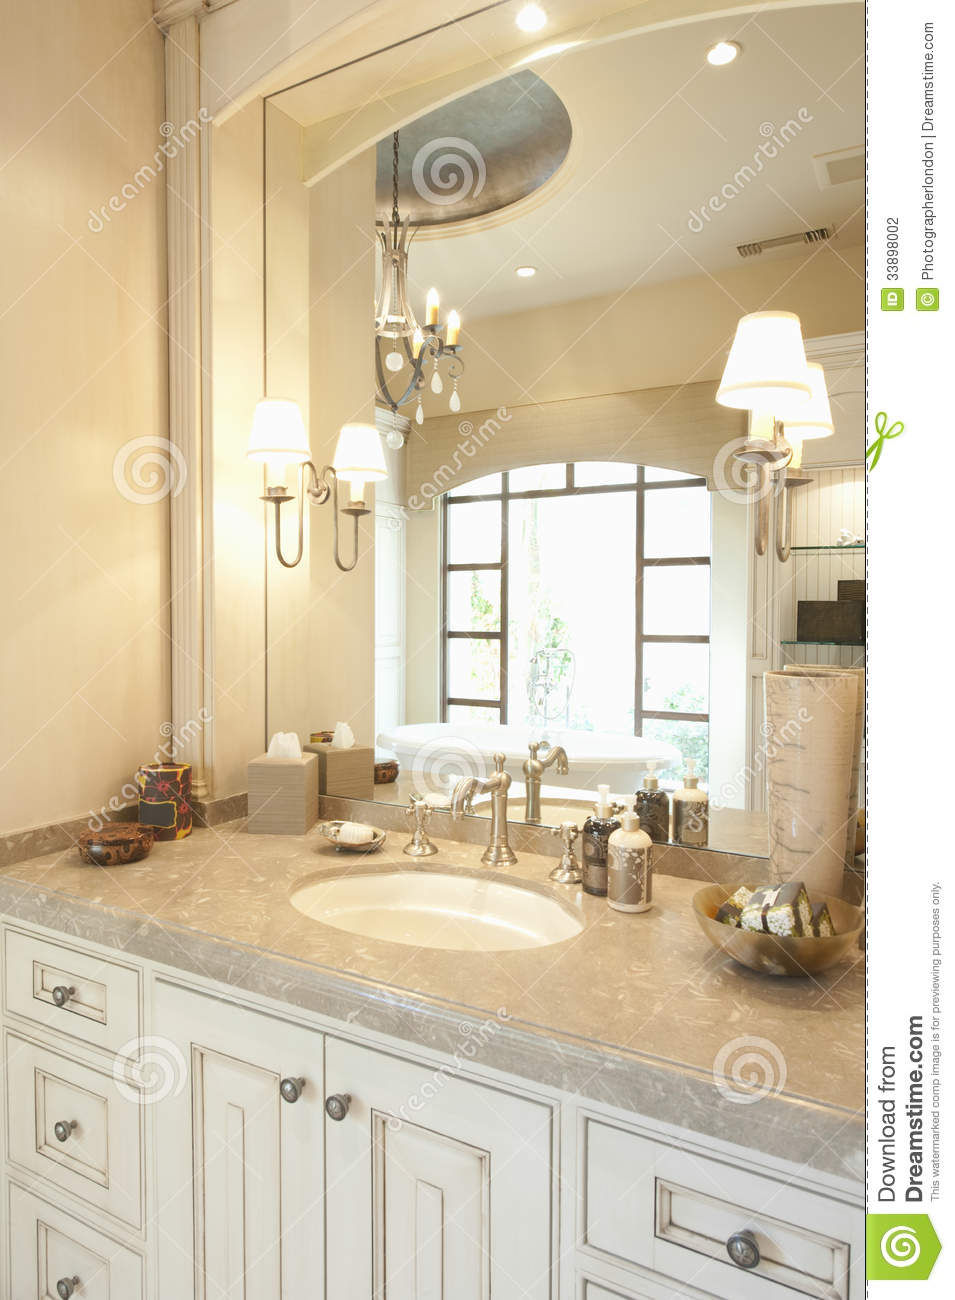 Modern Bathroom Stock Photography  Image 33898002